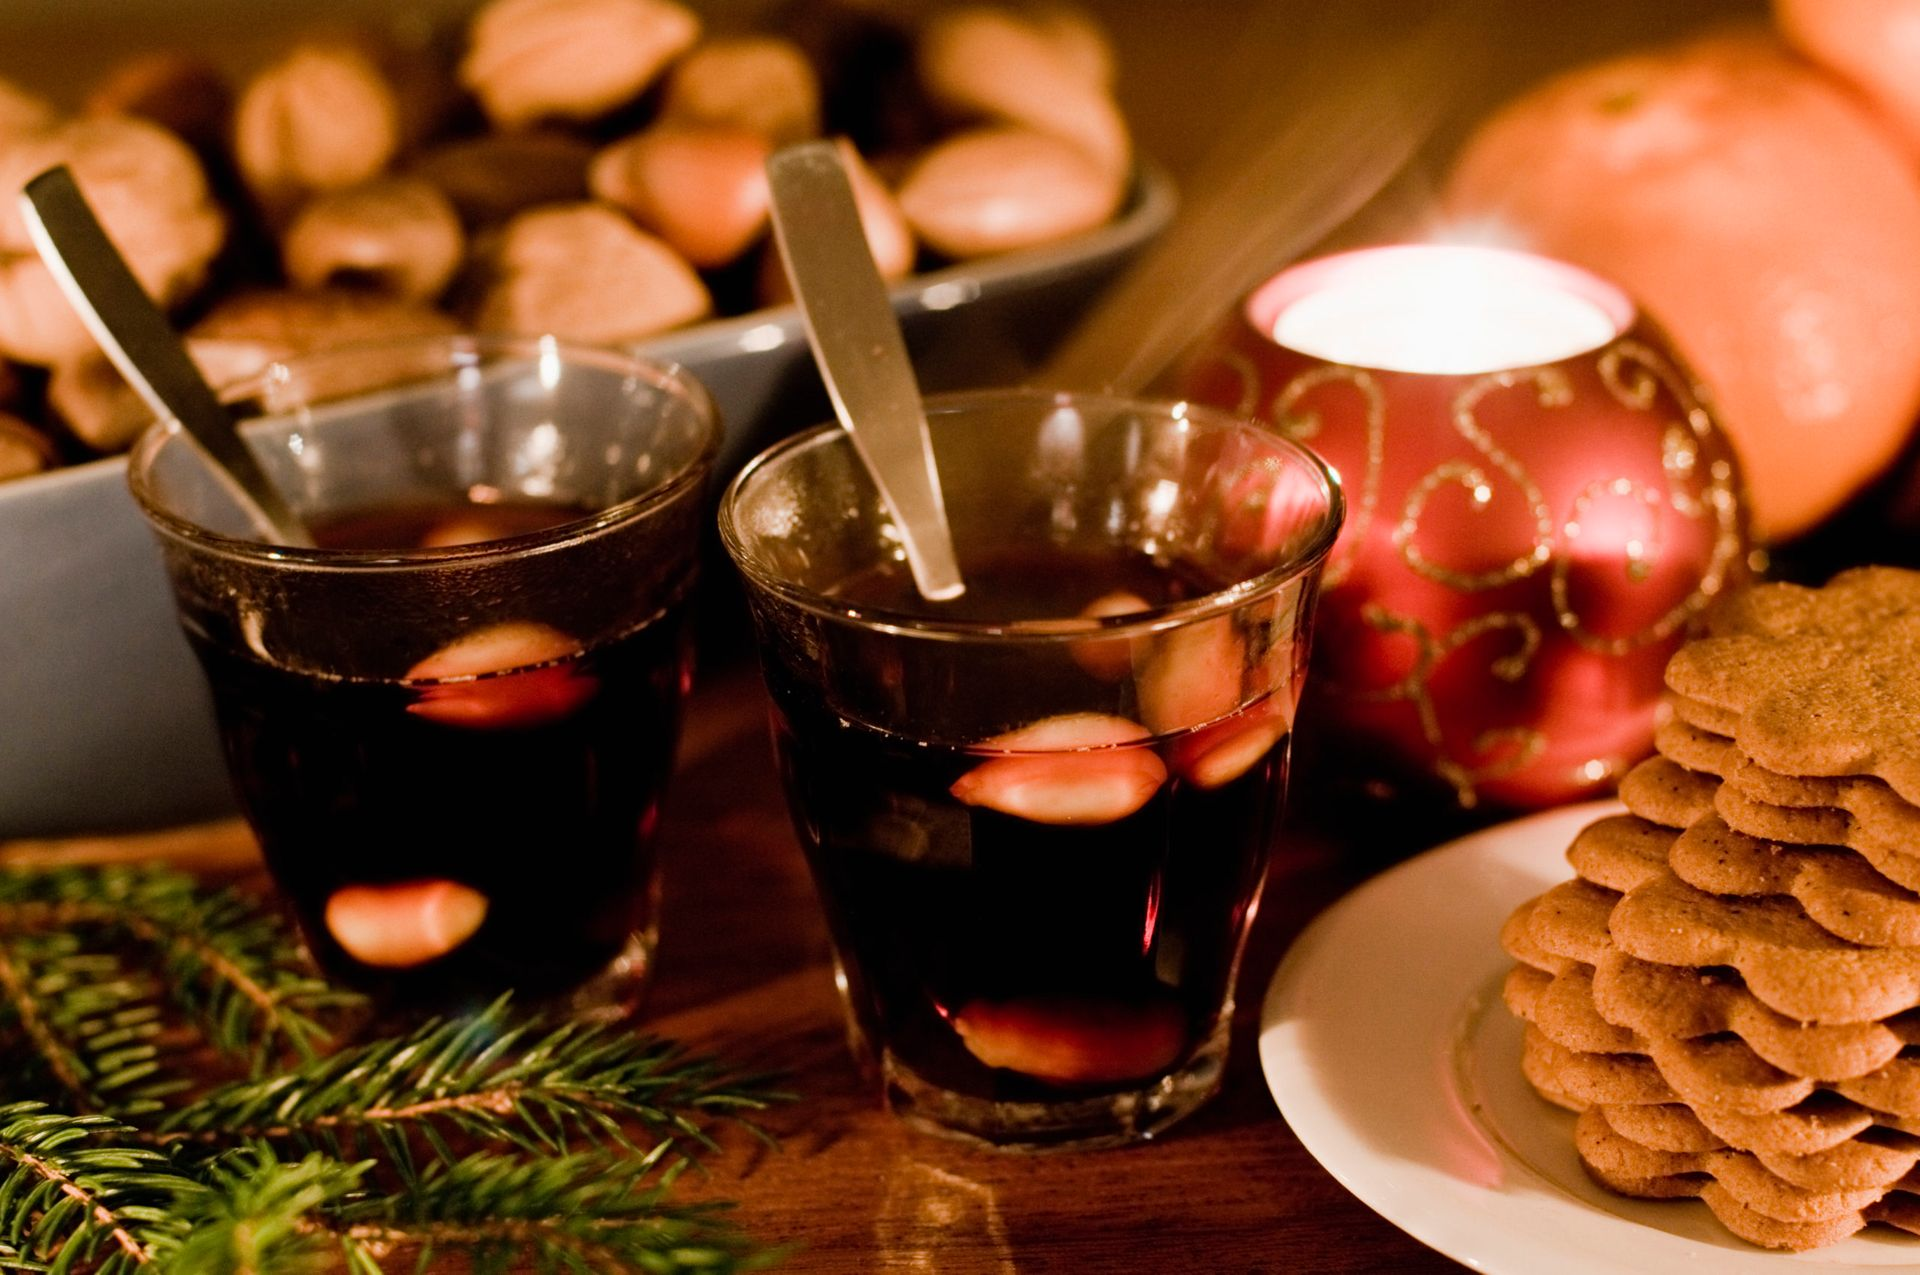 Two small glasses of Swedish mulled wine beside a plate of gingerbred cookies.